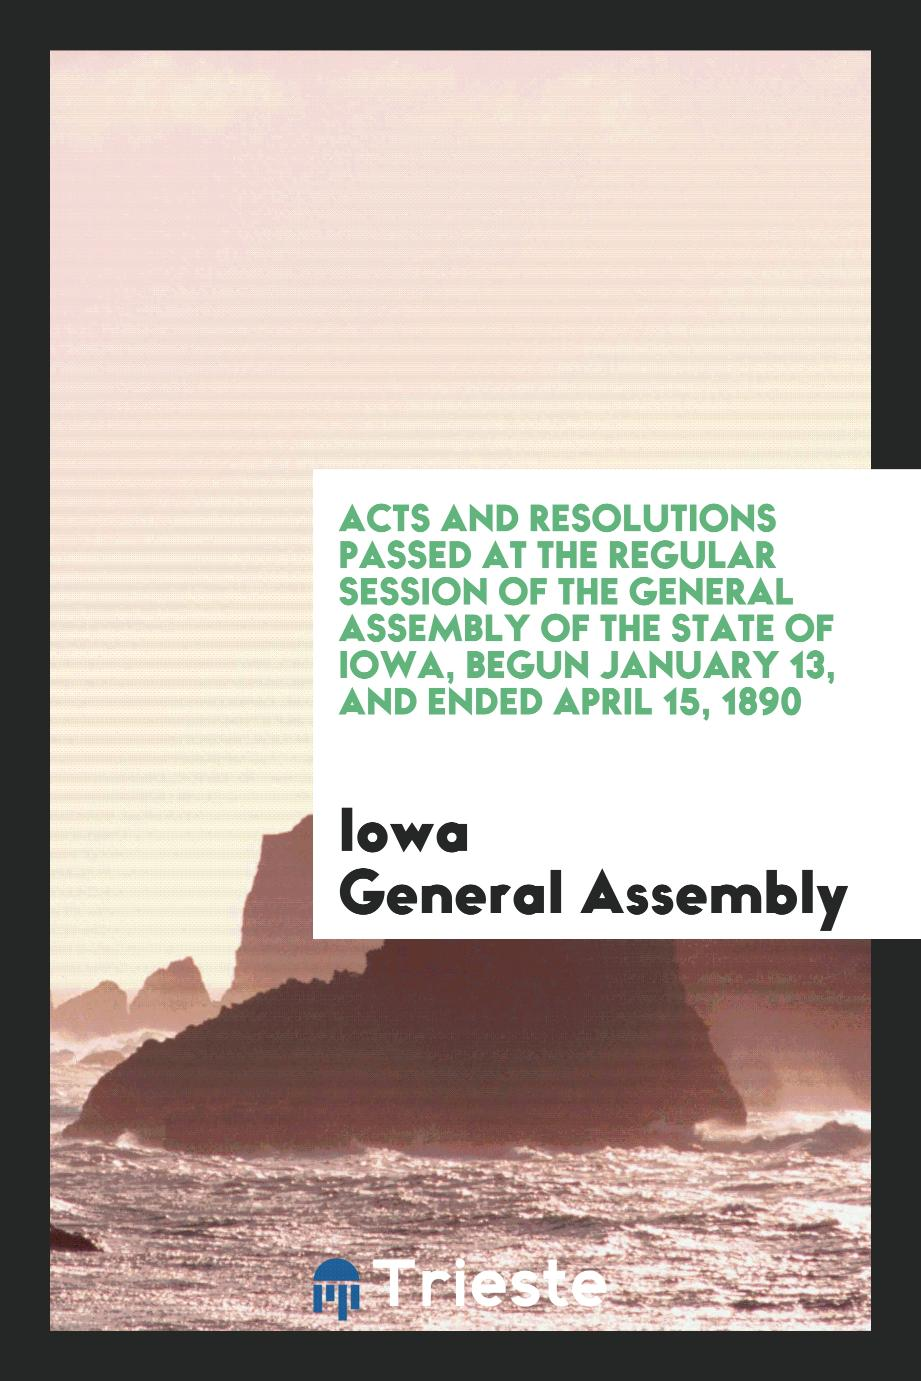 Acts and Resolutions Passed at the Regular Session of the General Assembly of the State of Iowa, Begun January 13, and Ended April 15, 1890